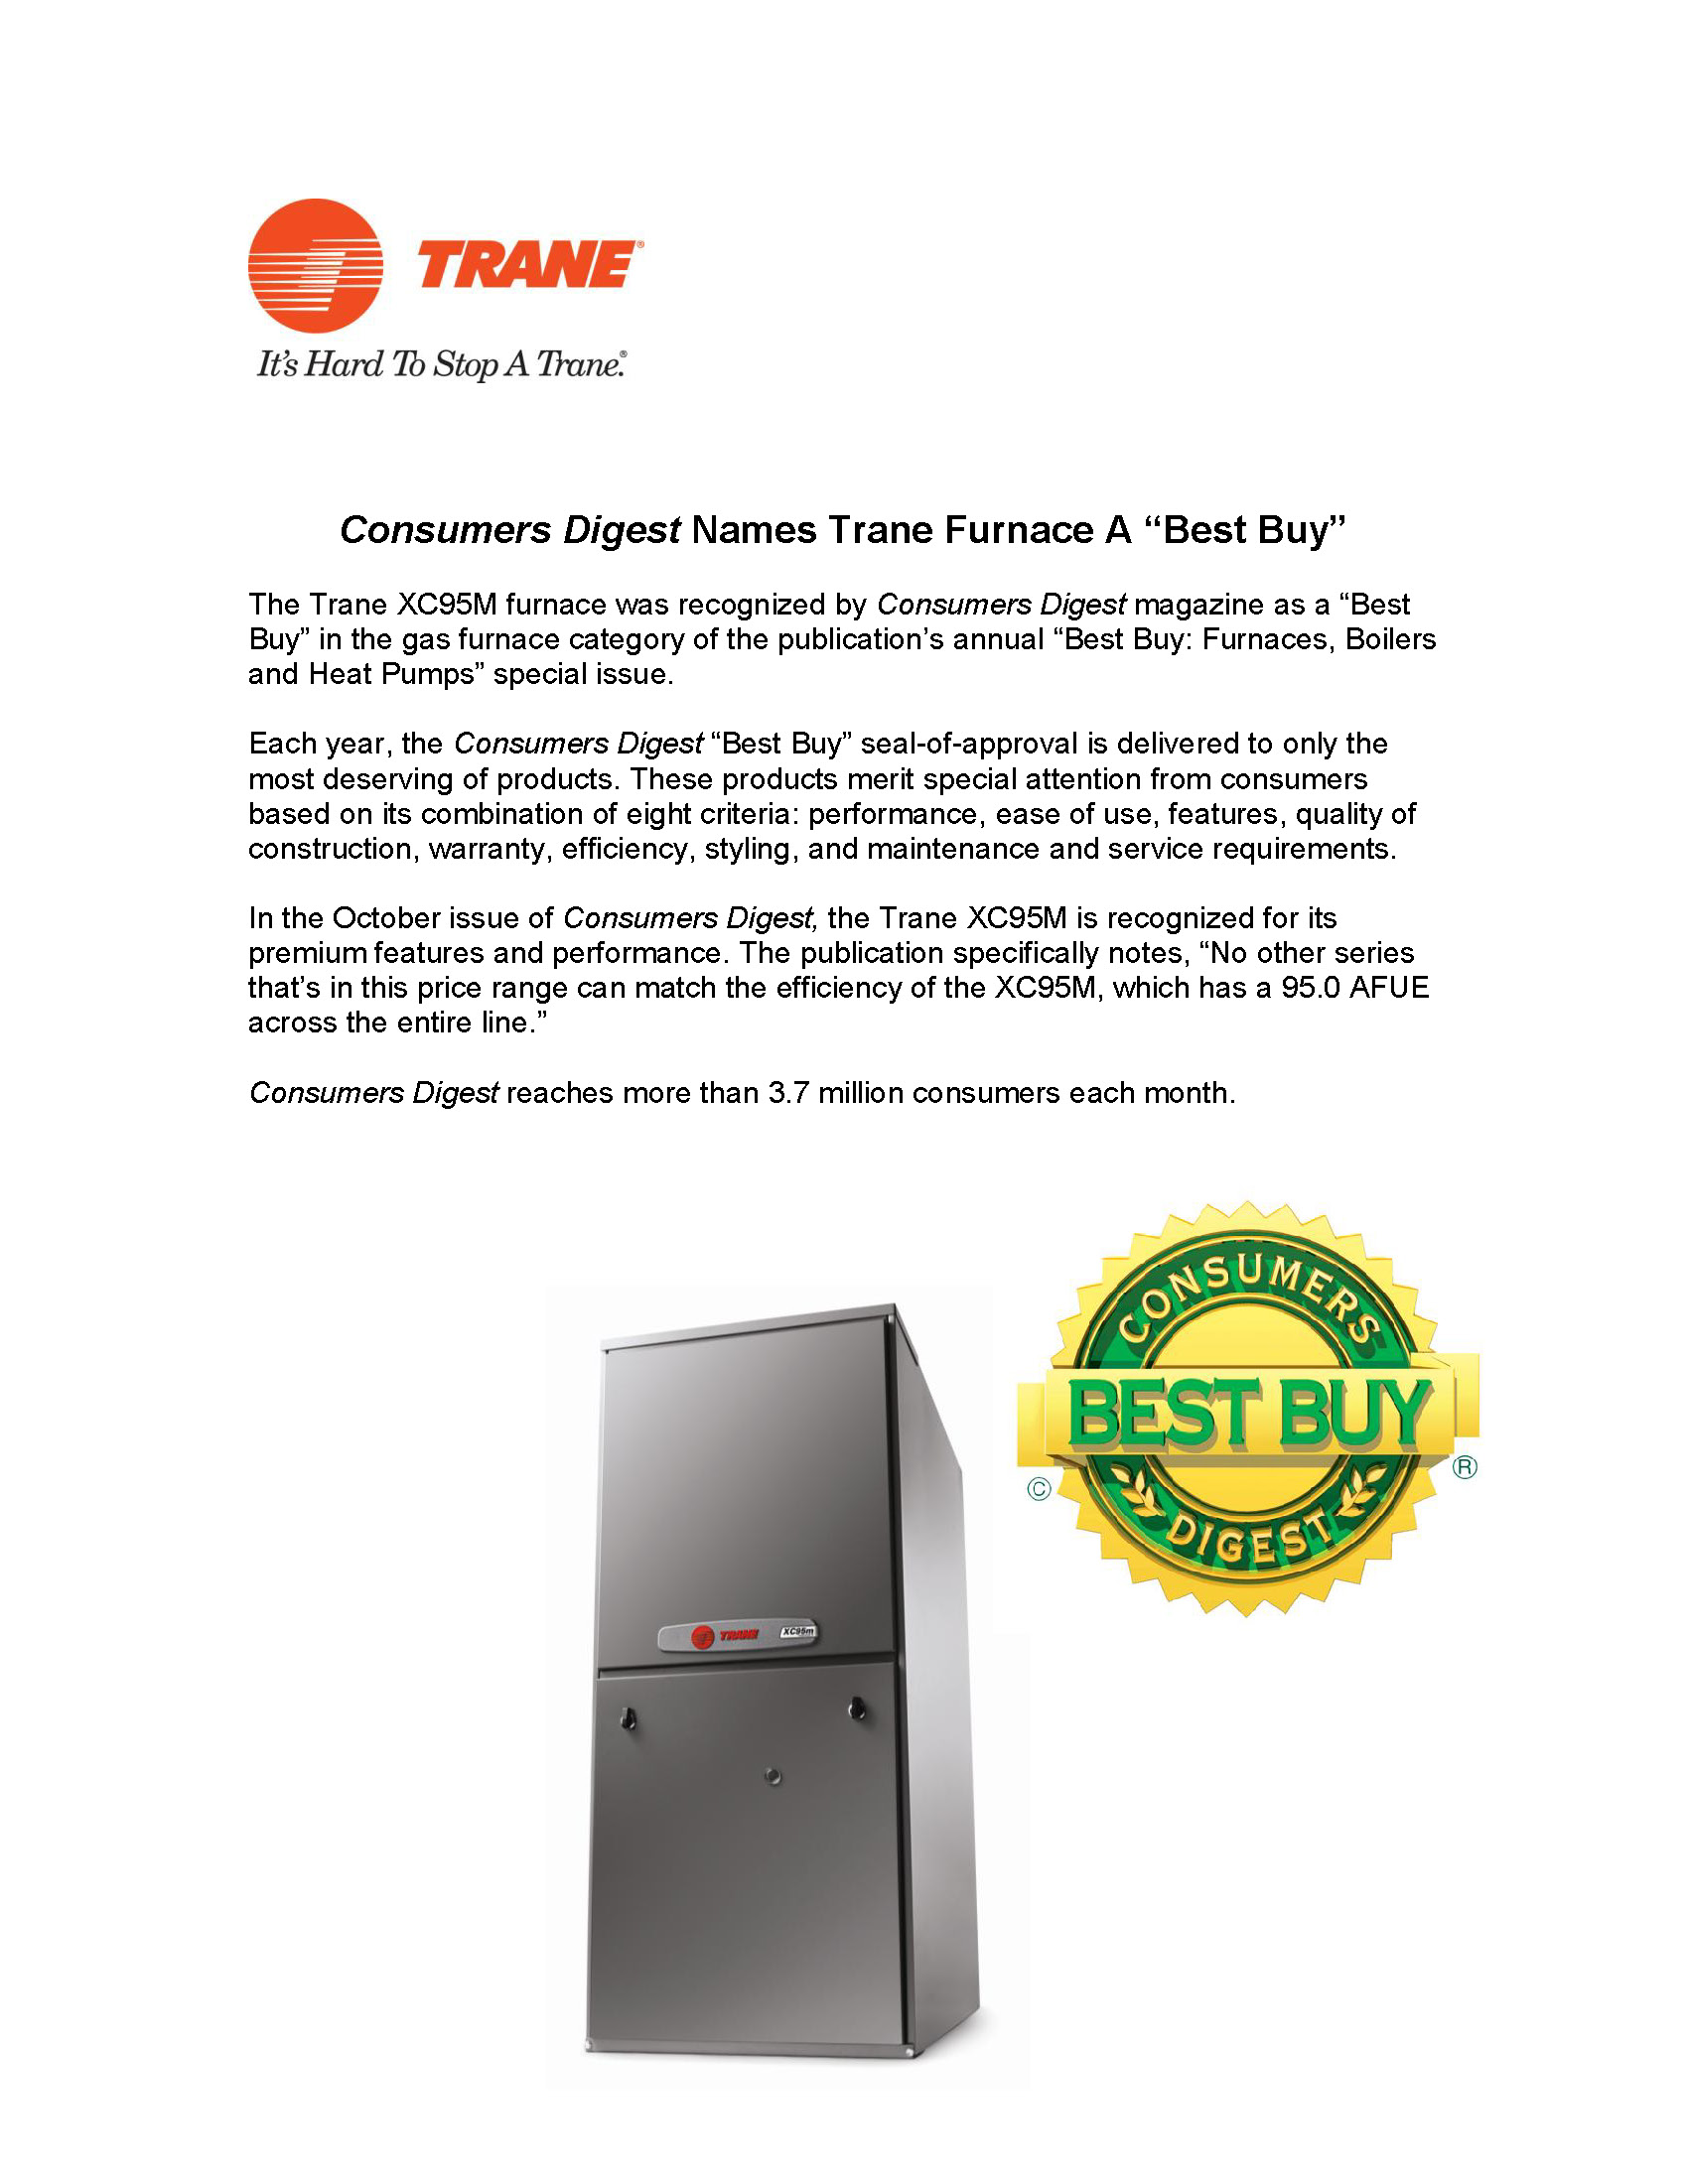 Trane Consumers Digest Best Buy_10 03 12